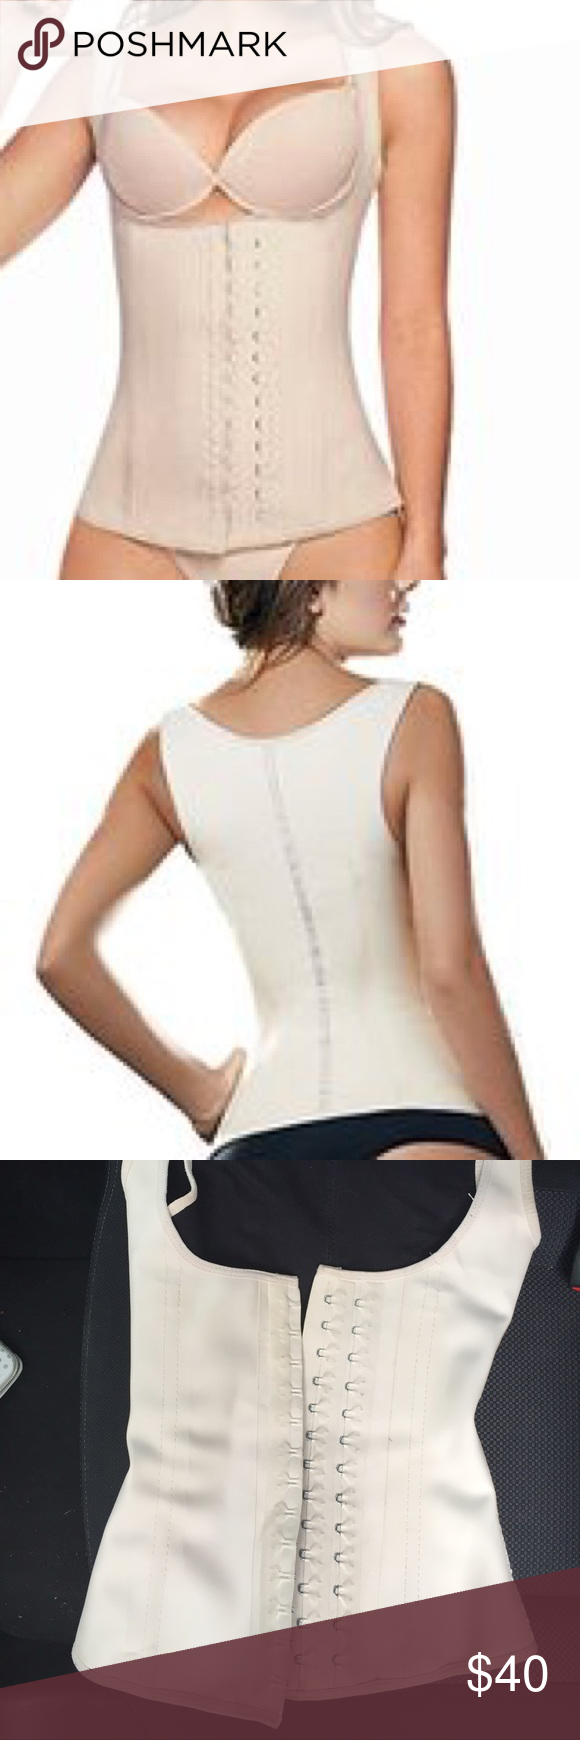 dd65832266 Ann Cherry Women s Latex Waist Trainer - XS Ann Cherry Women s Latex Waist  Trainer Cincher Faja Girdle Full Vest Body Shaper - Used in good condition  ...